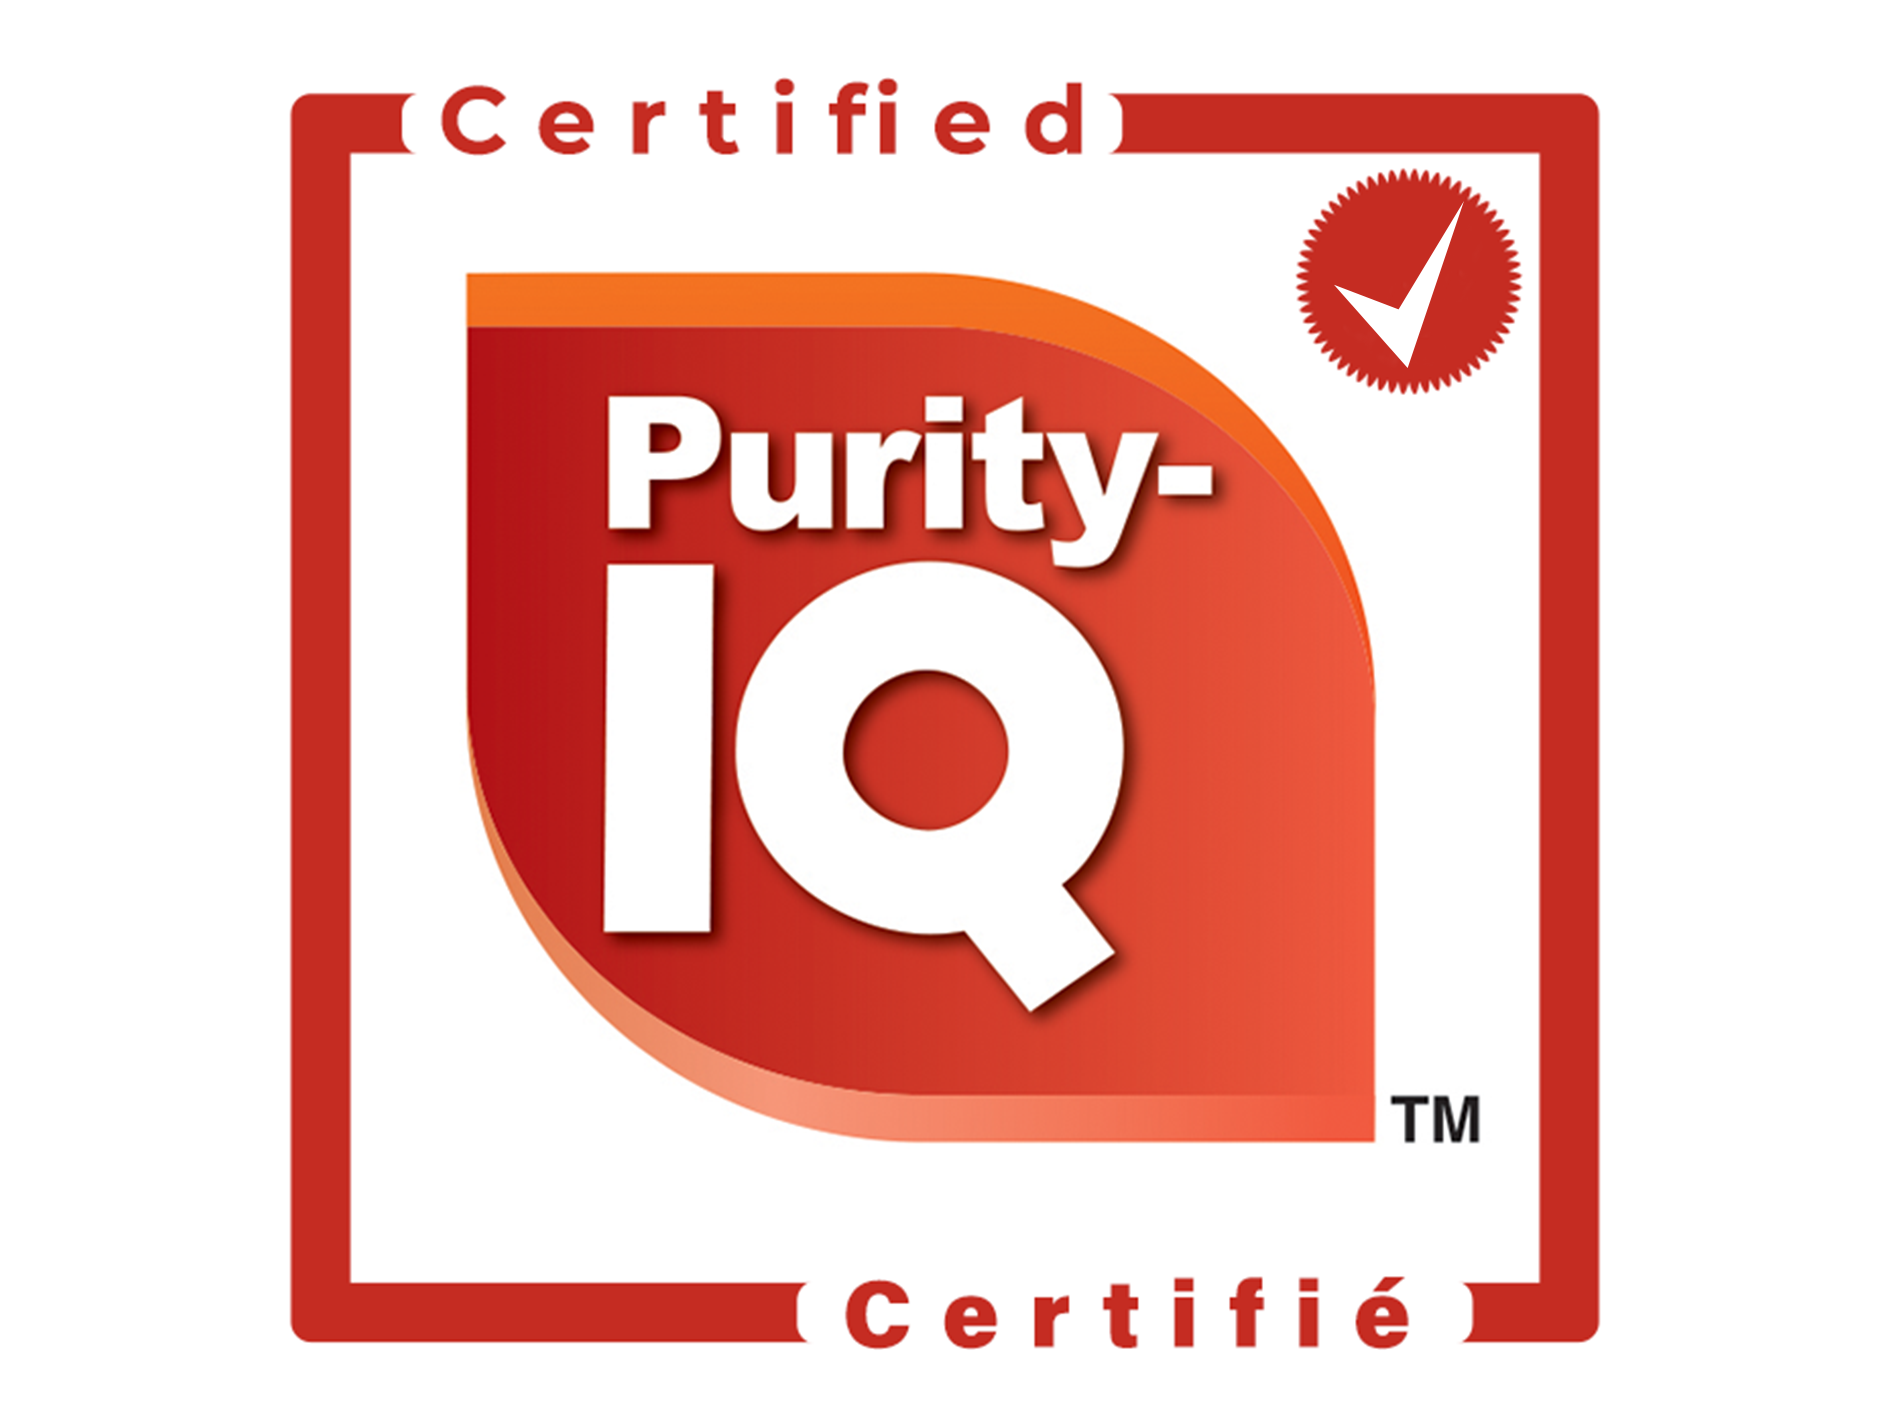 Purity-IQPartners with First North American Testing Labs